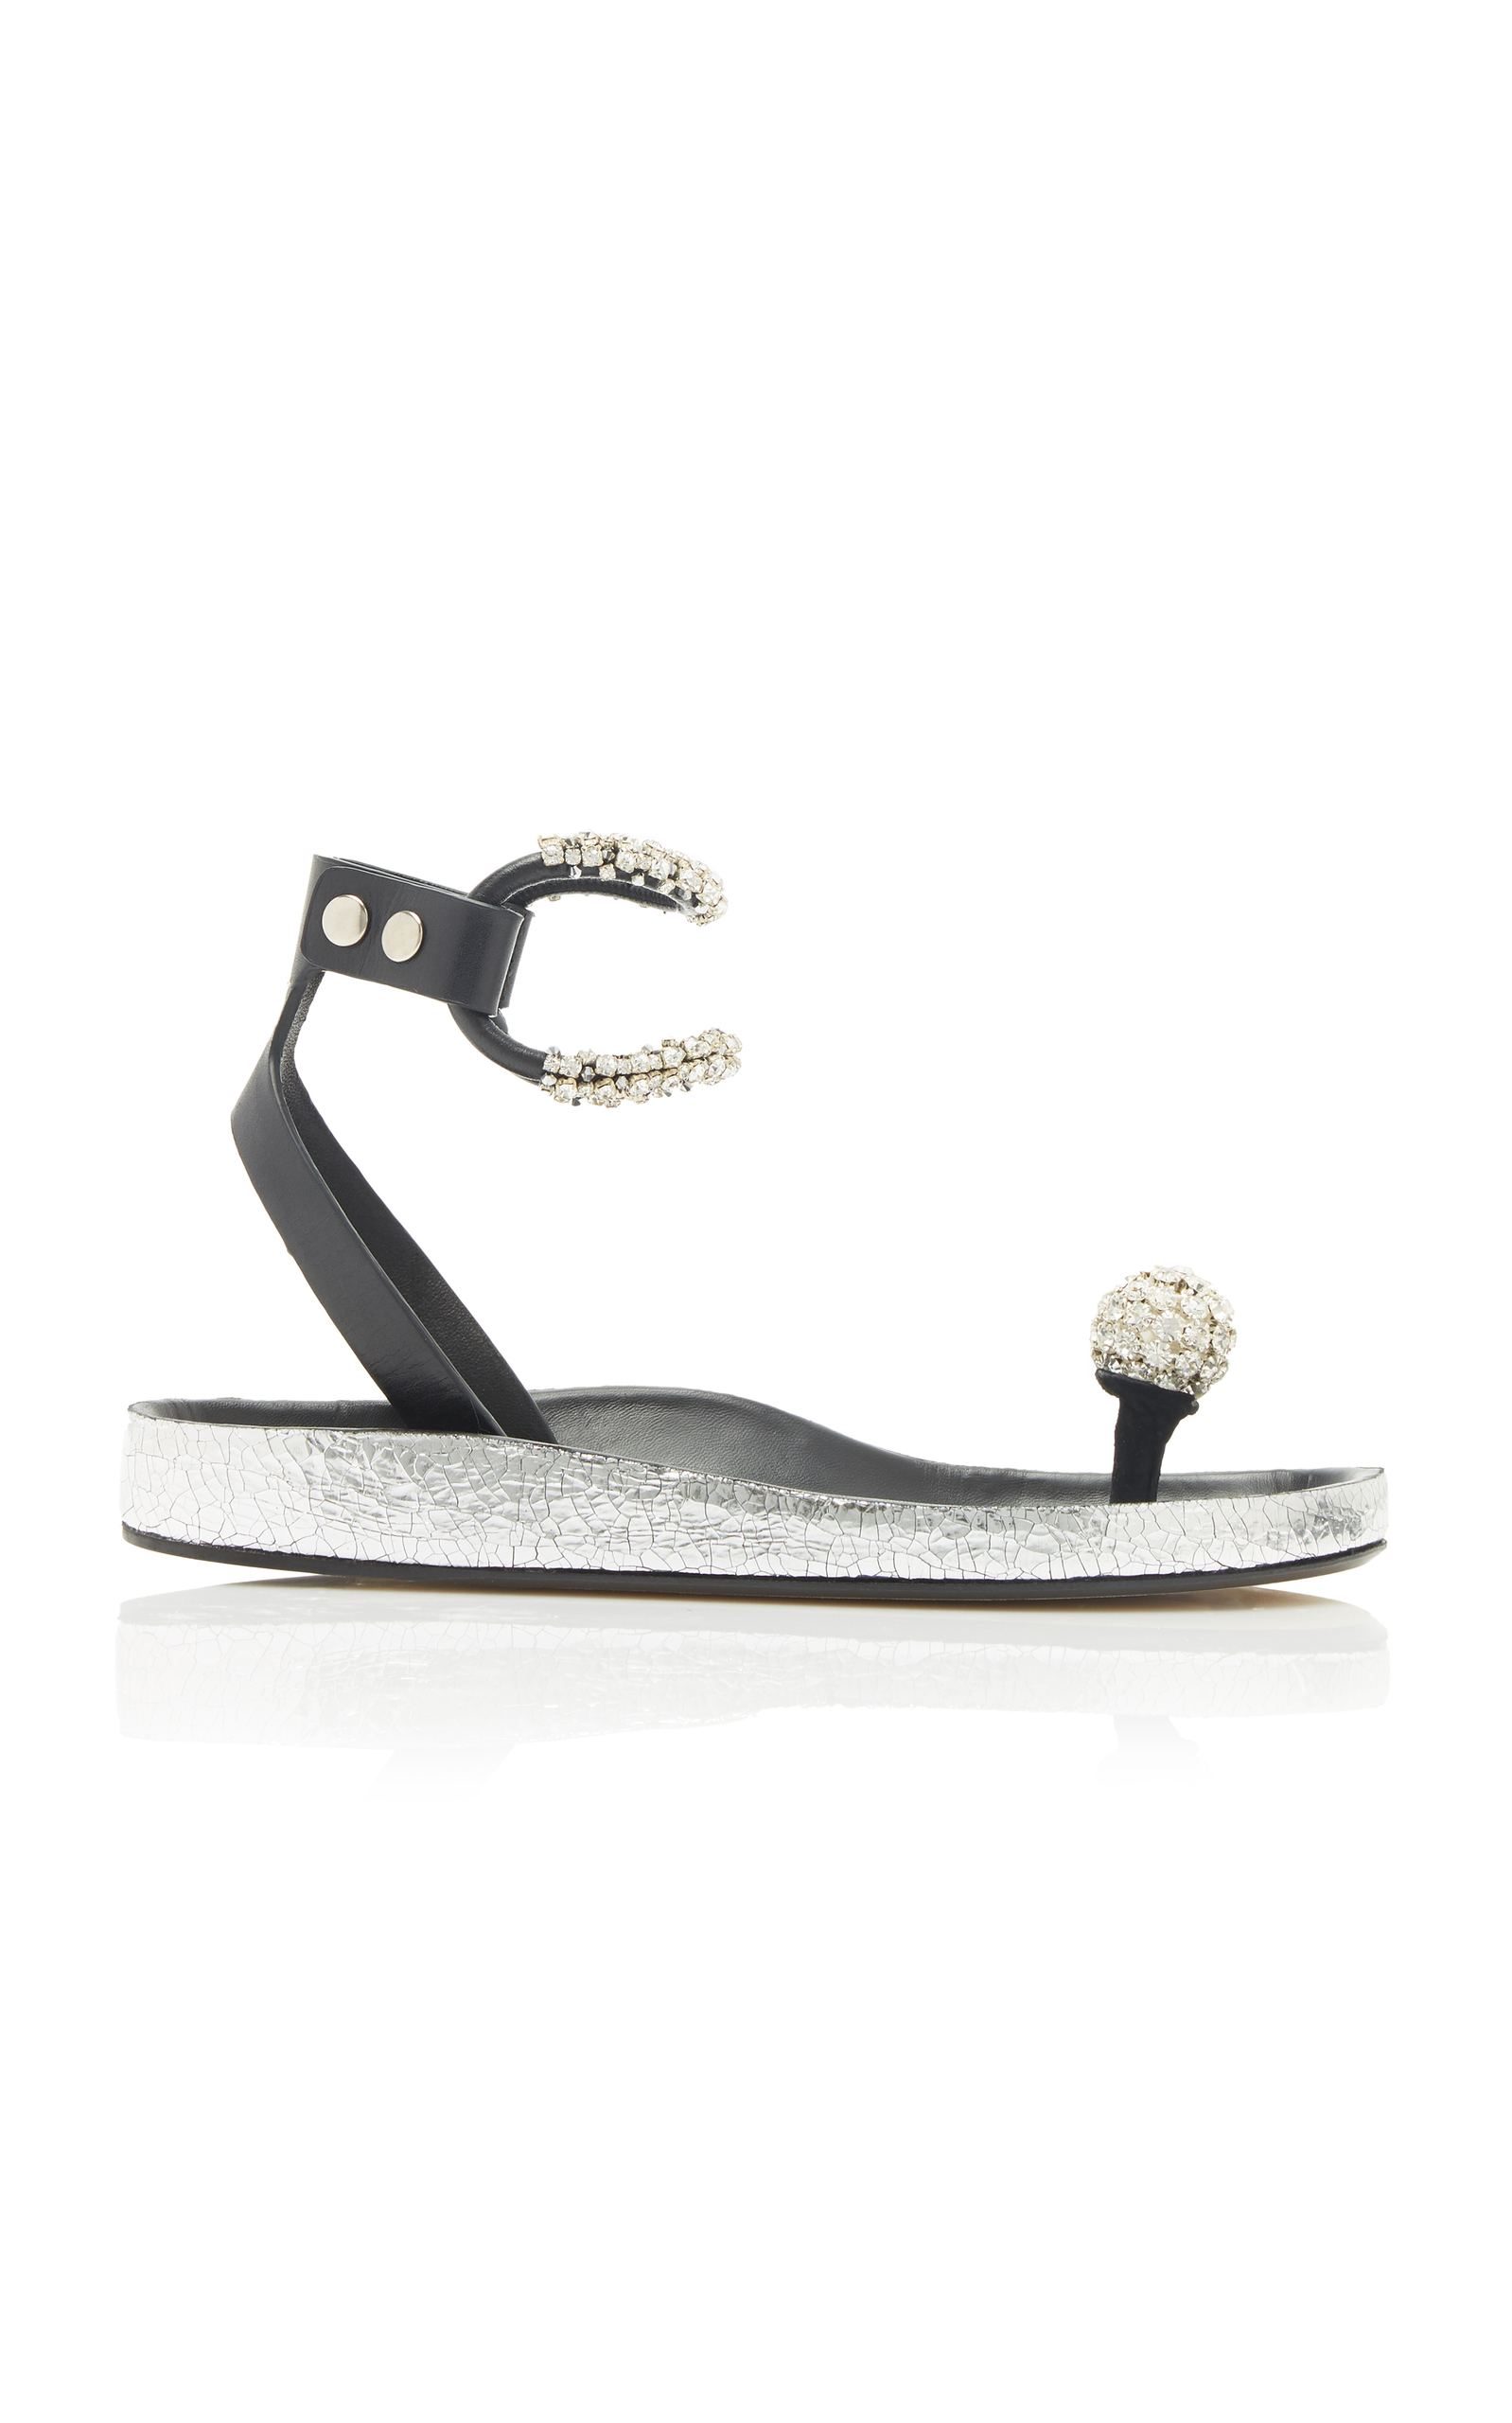 Isabel Marant Metallic Leather Ecly Sandals in Multi. xfrYDPKiF